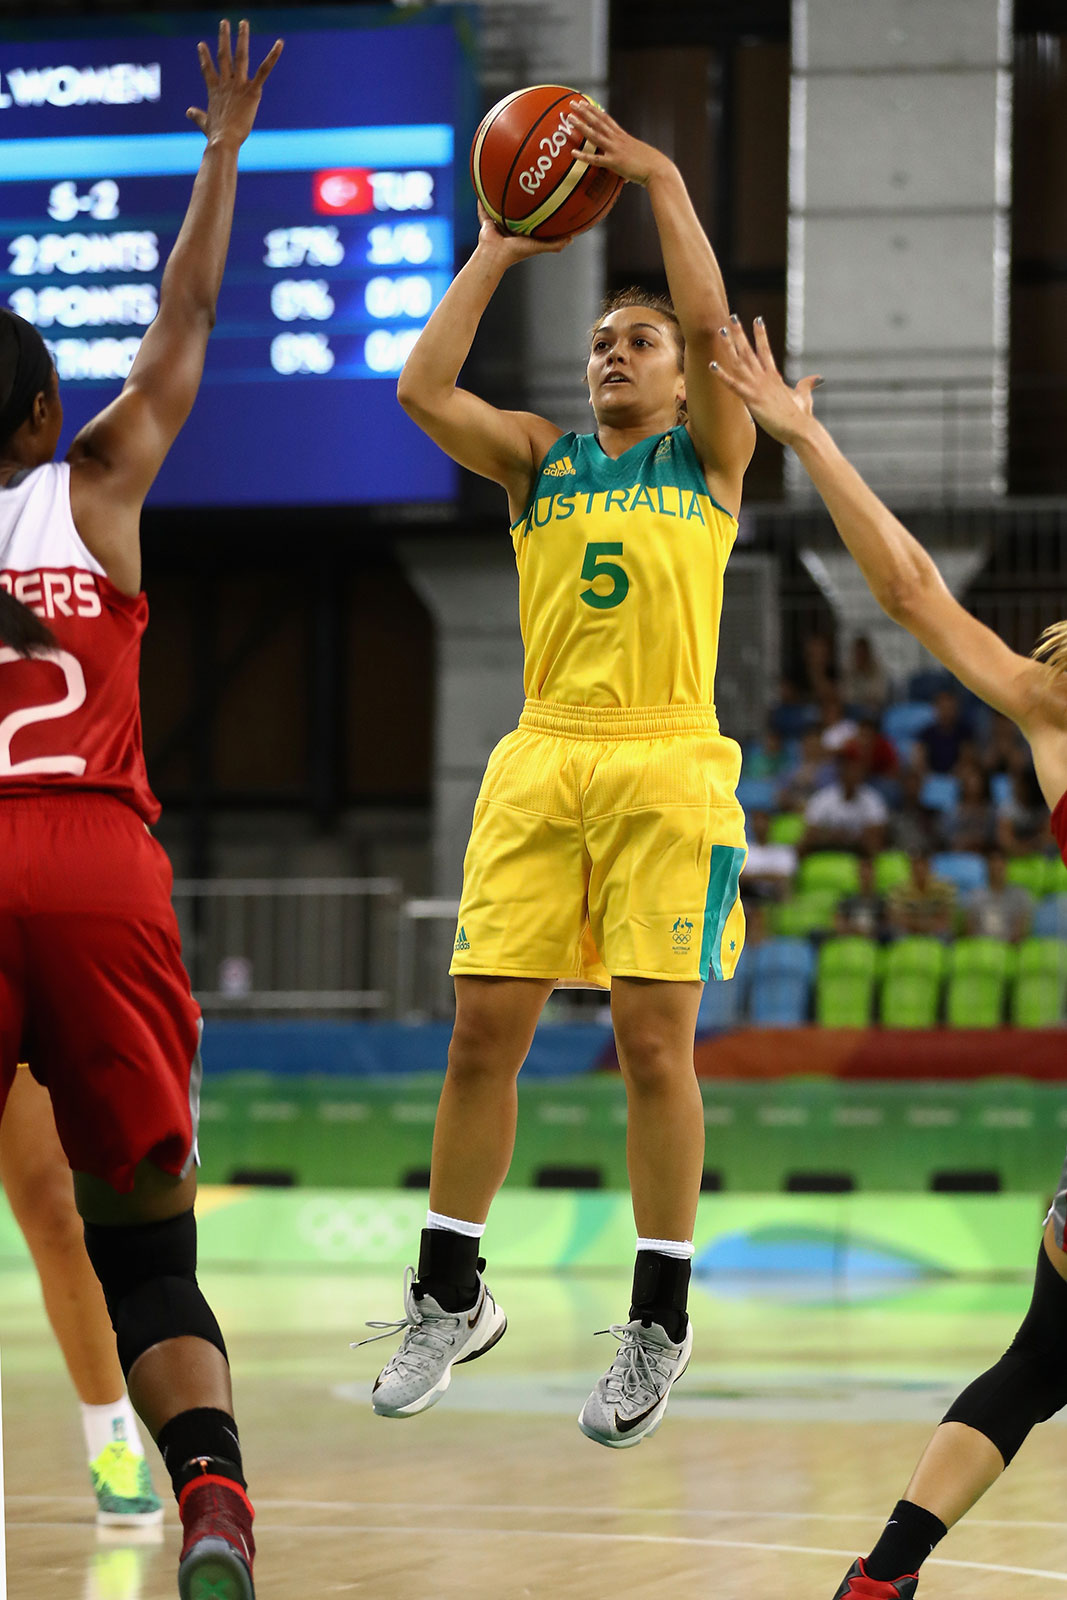 Women's Basketball - Preliminary Round - Group A